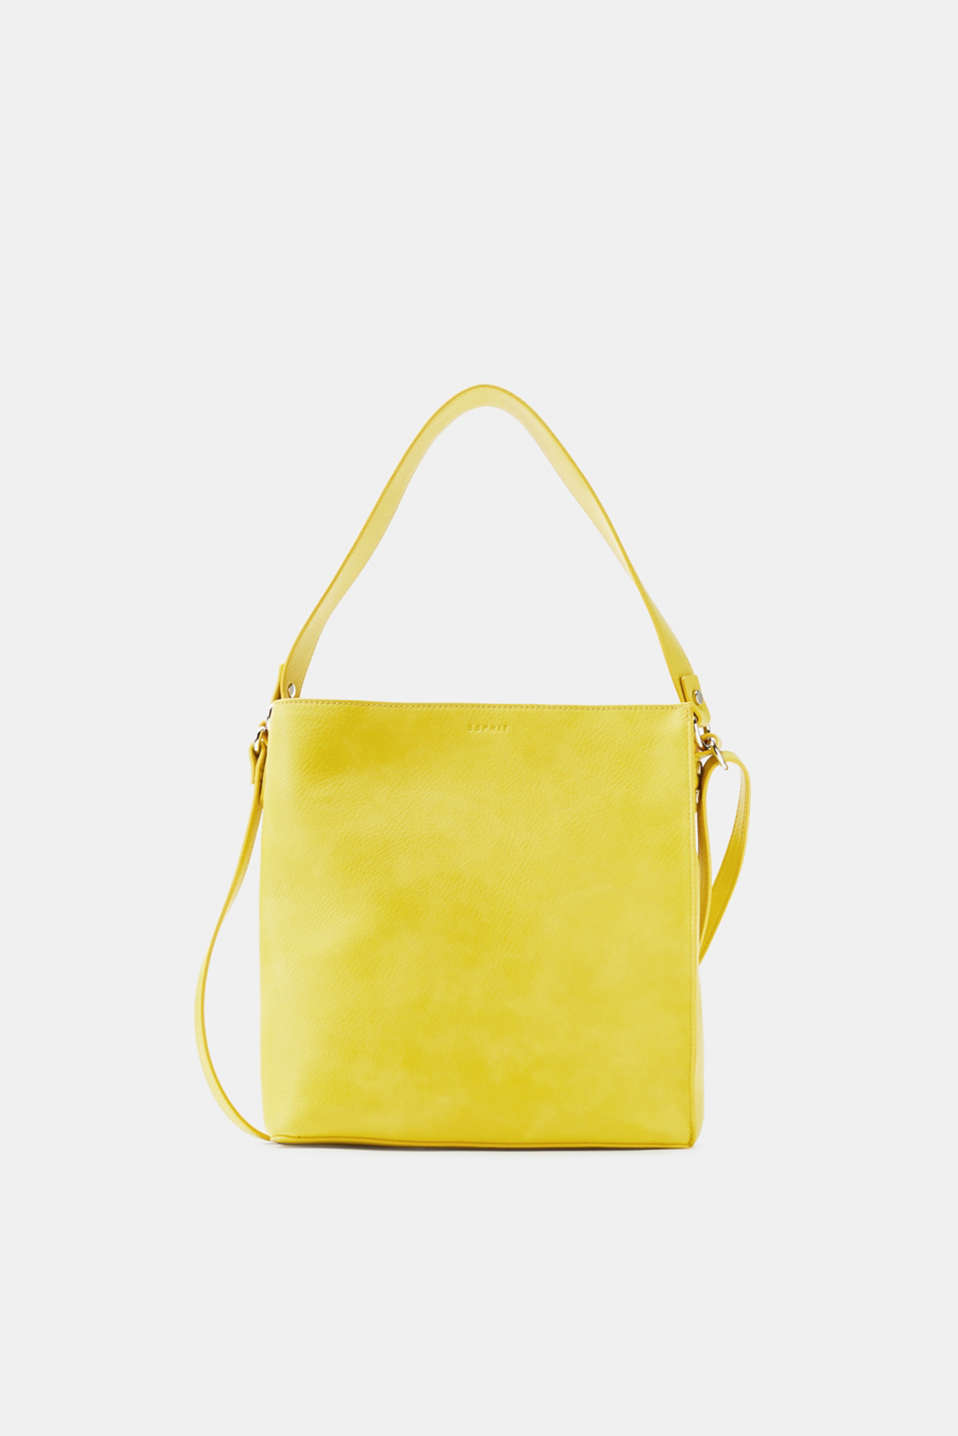 Esprit - Shoulder bag in grained faux leather